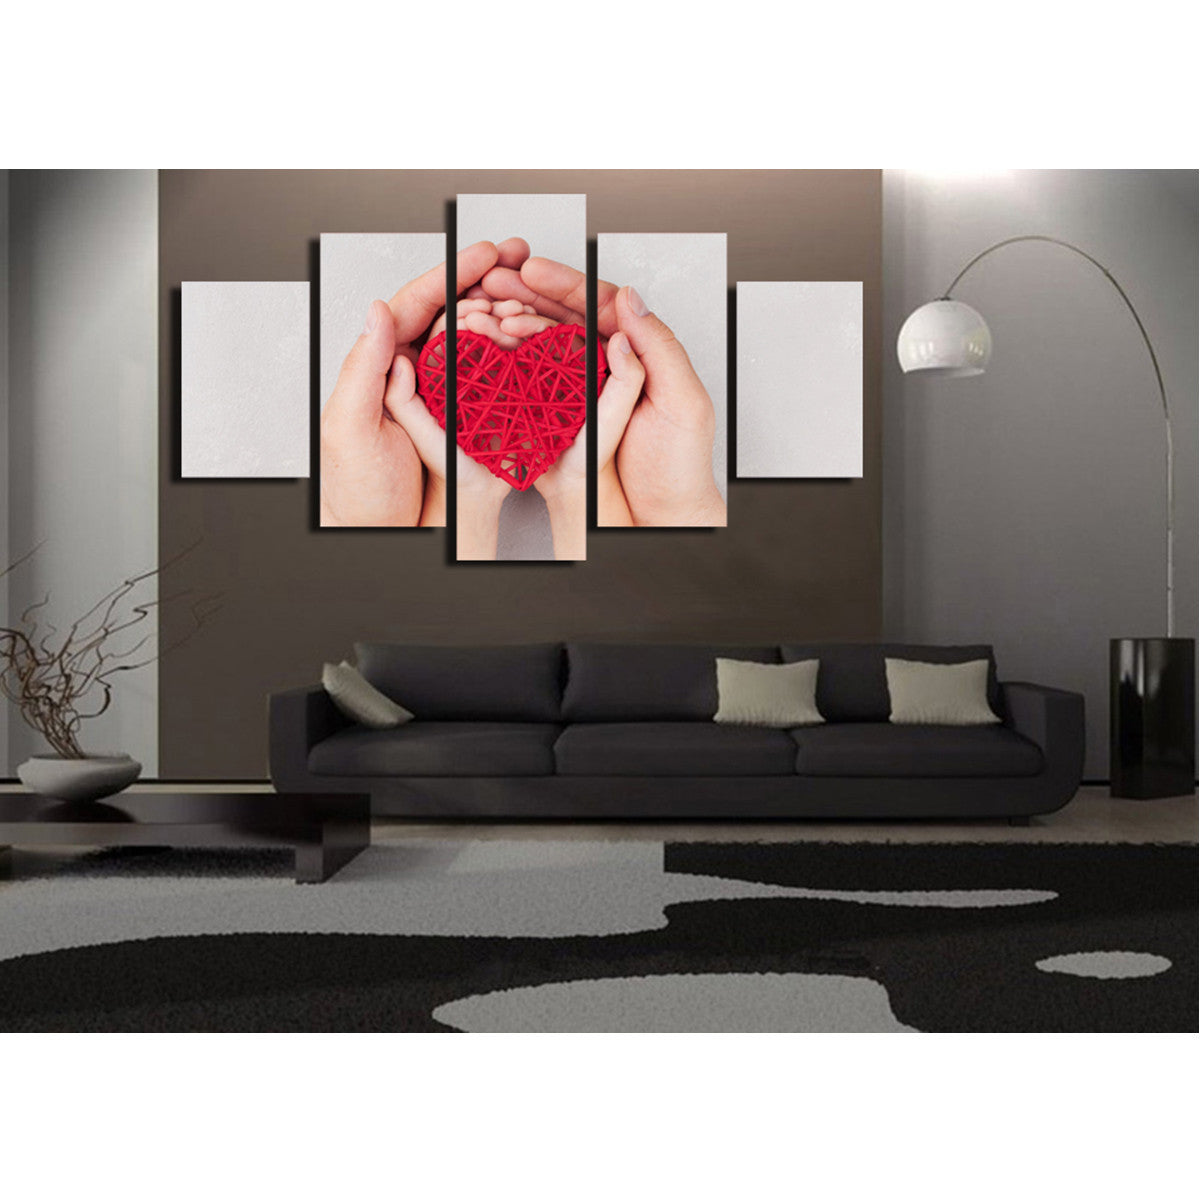 Mother's Love 5 Piece Canvas